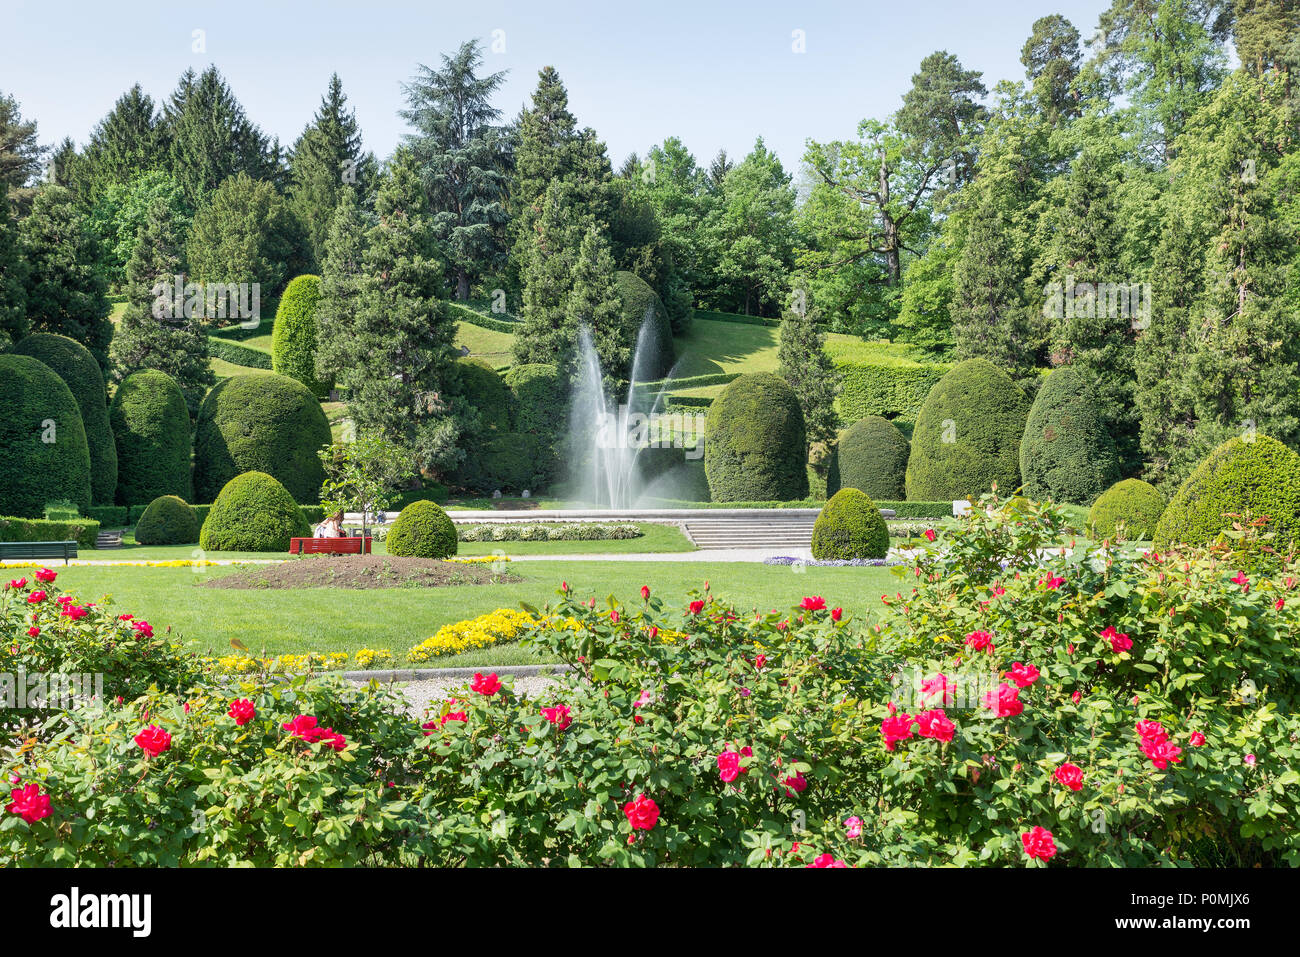 Typical And Famous Symmetrical Italian Garden Giardino All Italiana Or Formal Garden Giardino Formale In The City Center Of Varese Italy Stock Photo Alamy